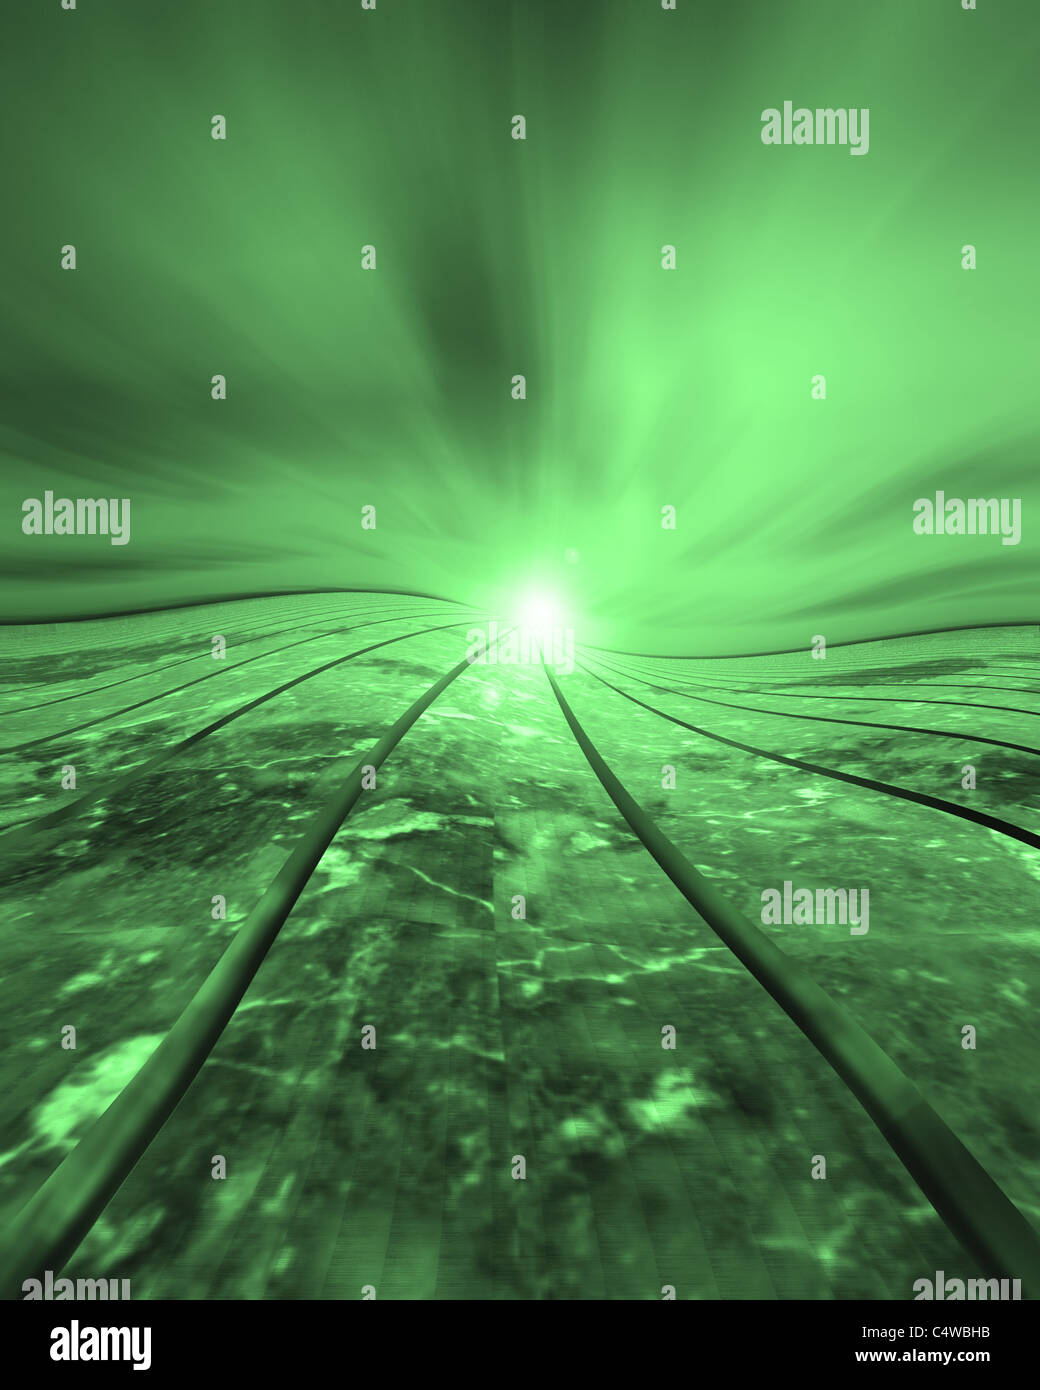 Curved grid upheaval distortion green issues - Stock Image